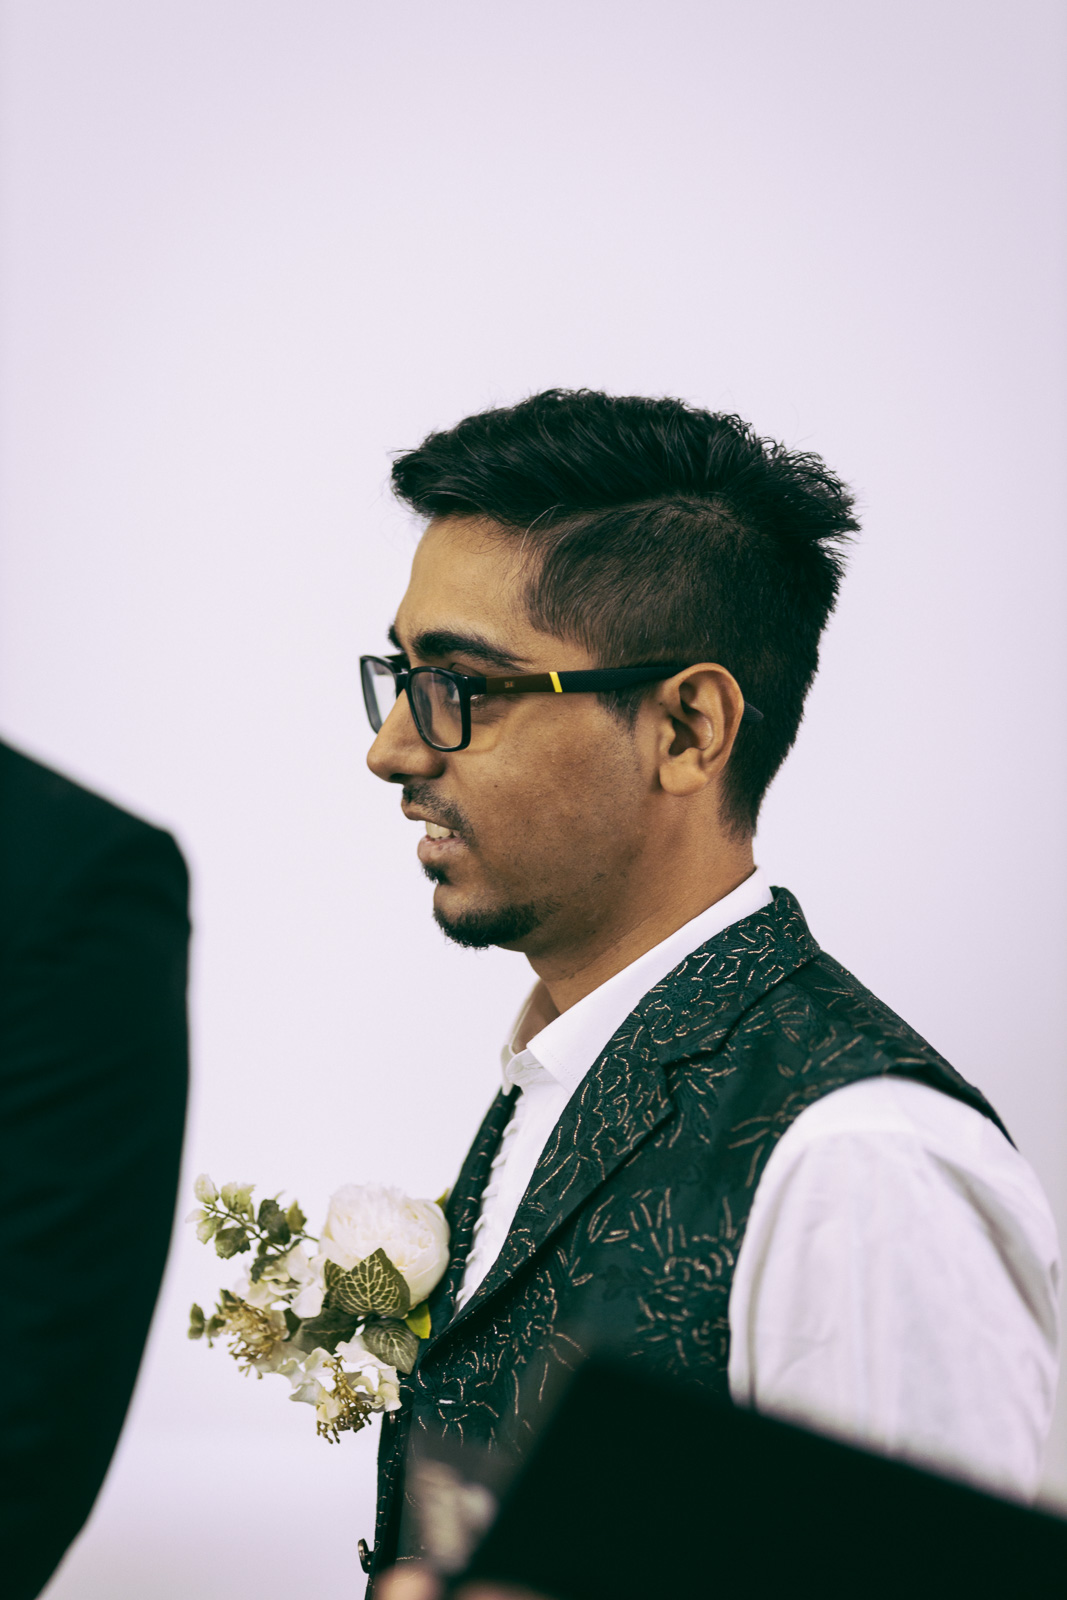 paige-nishant-wedding-blog-13.jpg